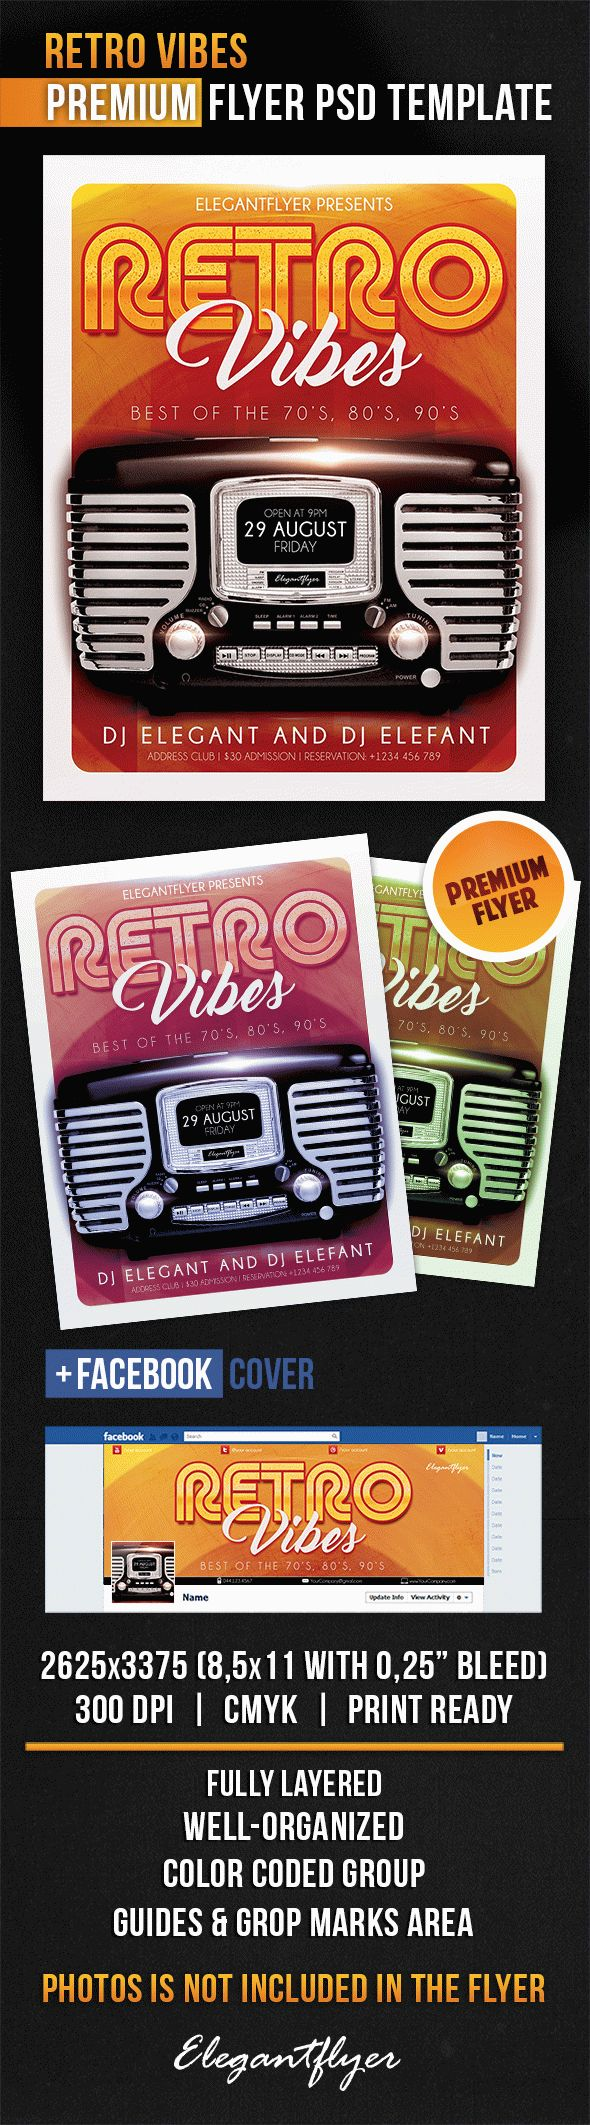 Retro Vibes – Flyer PSD Template + Facebook Cover